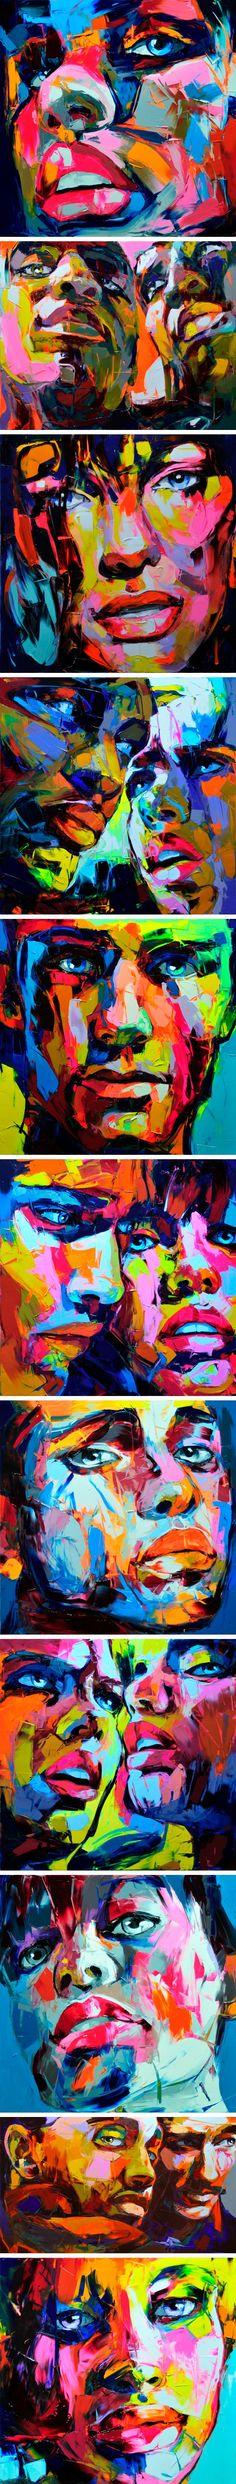 art by françoise nielly